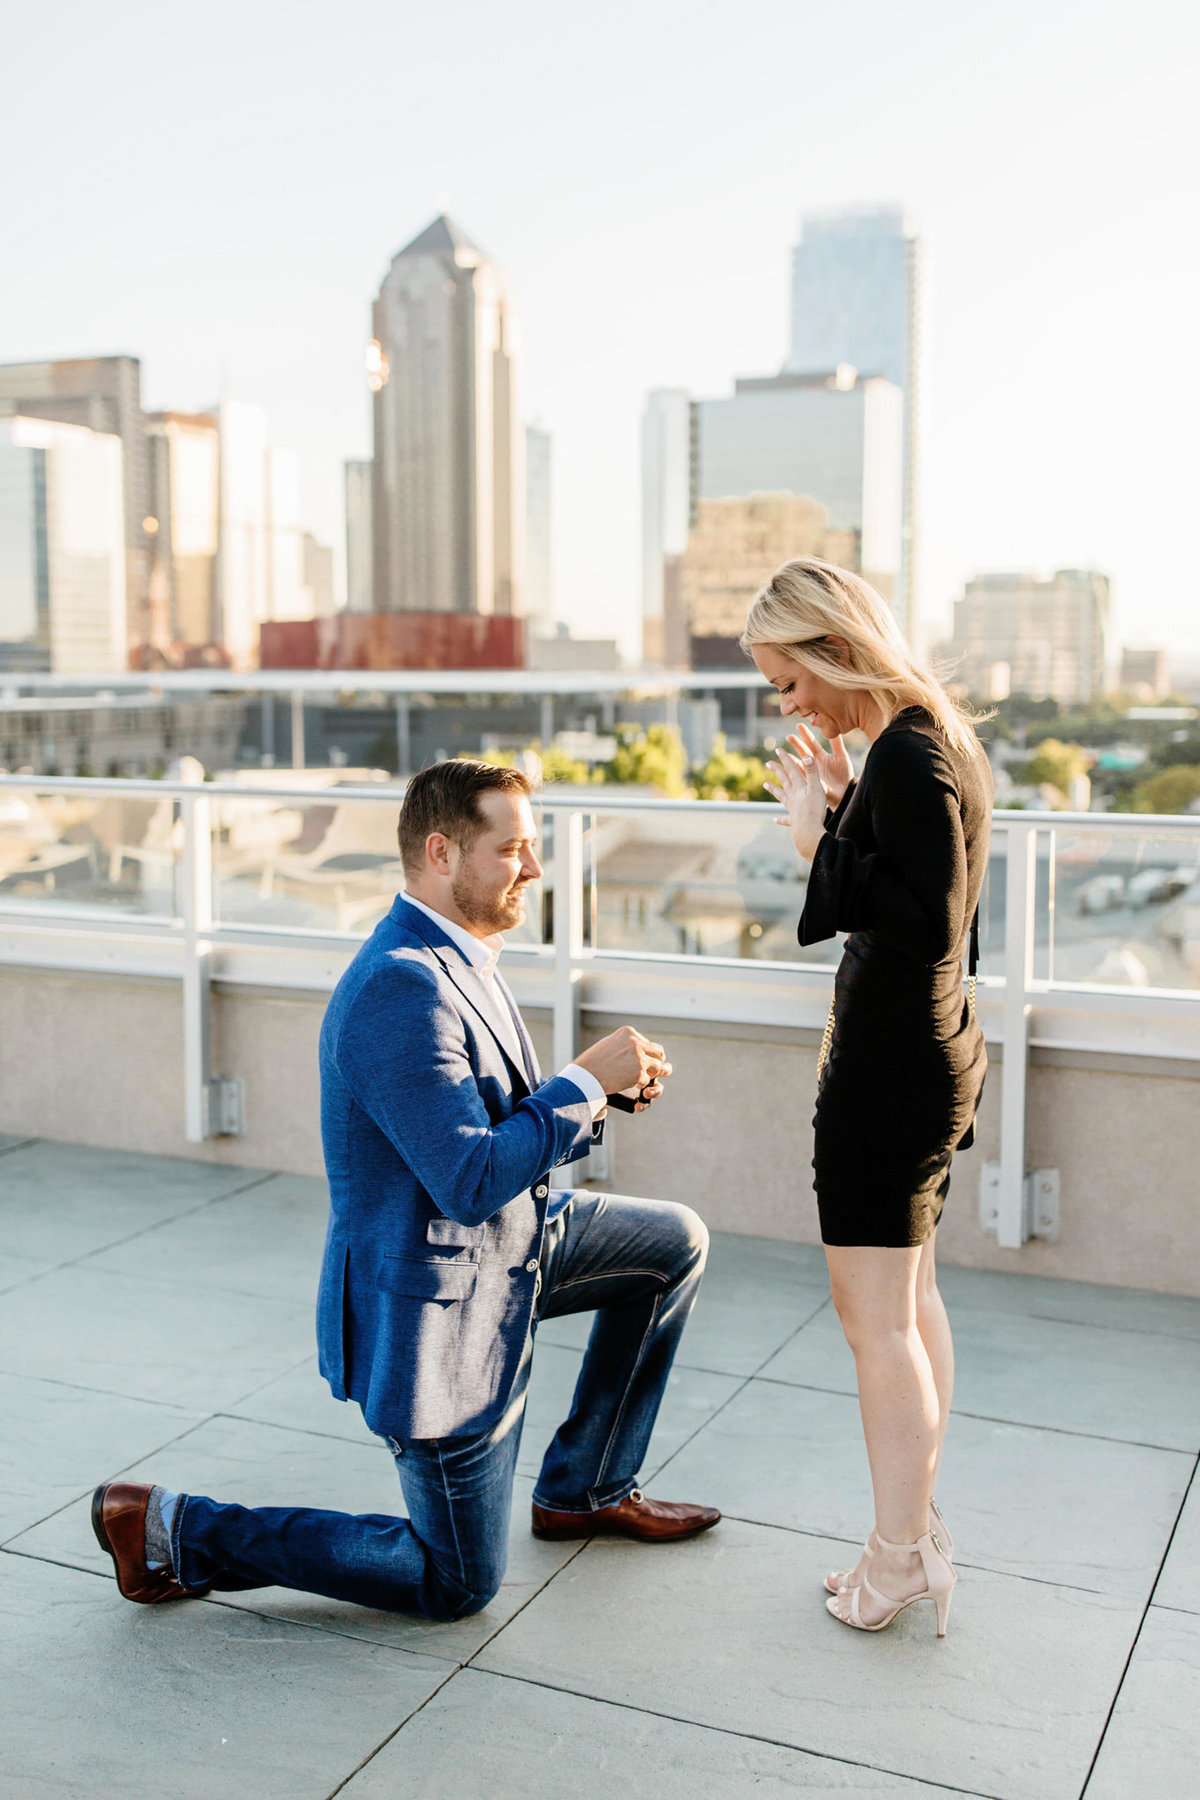 Eric & Megan - Downtown Dallas Rooftop Proposal & Engagement Session-33